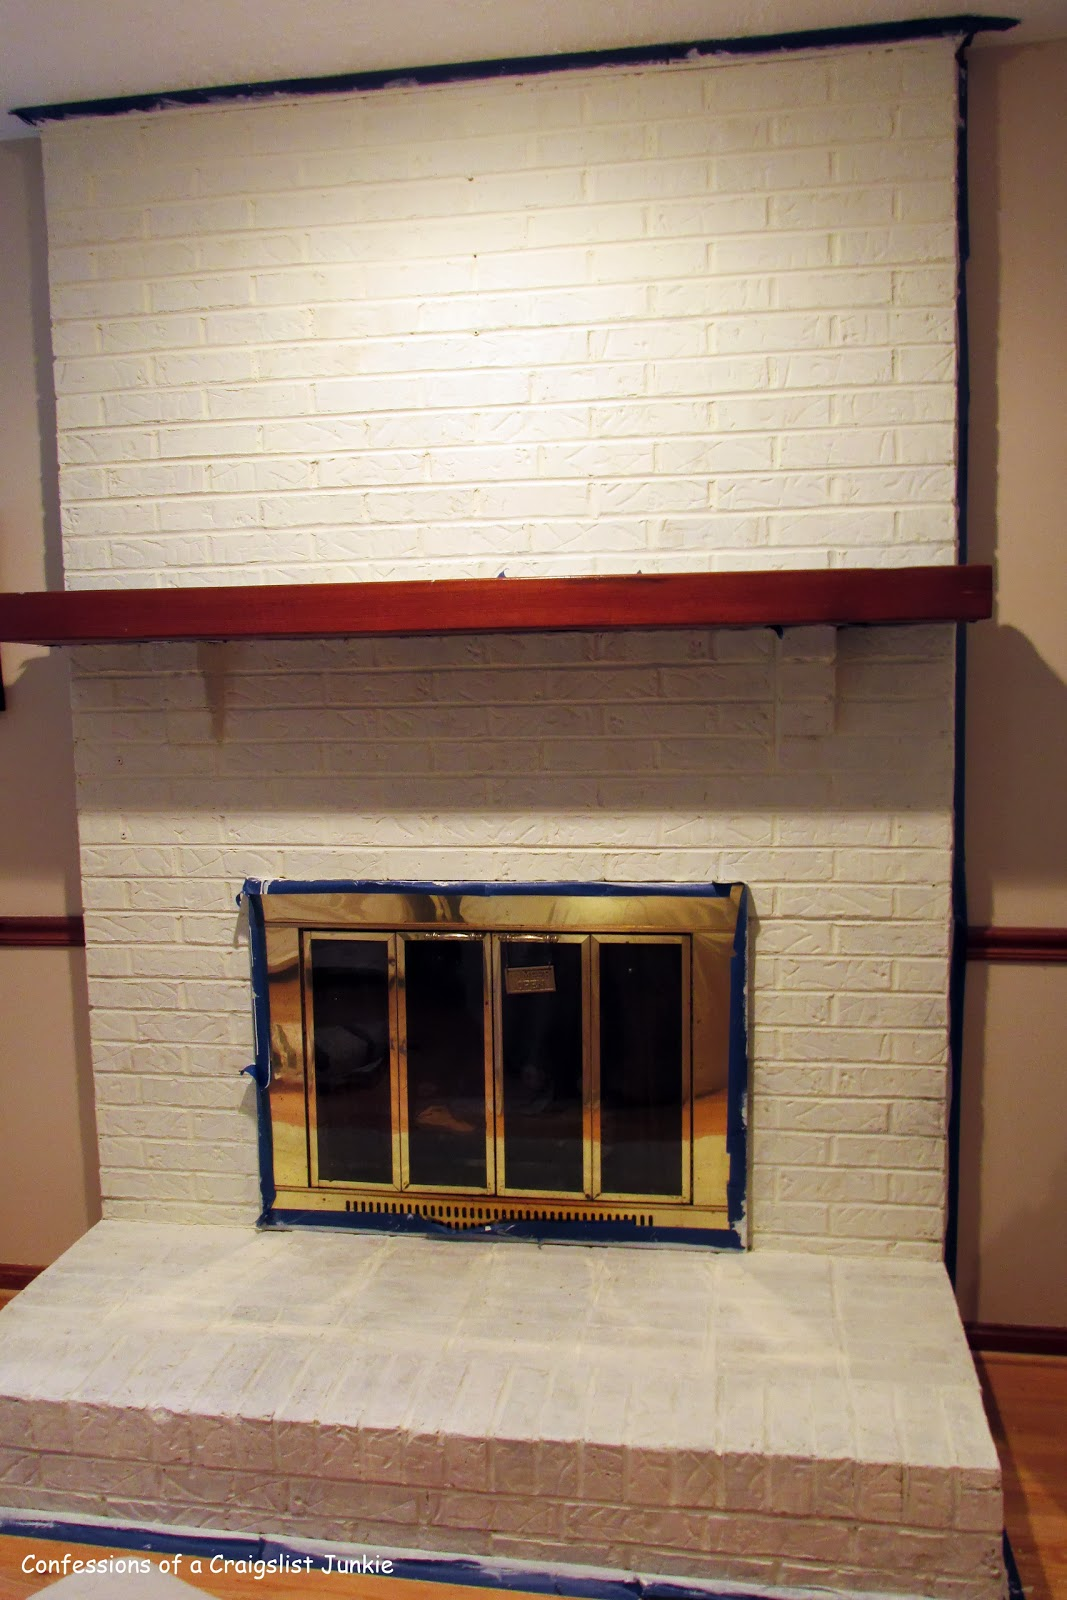 confessions of a craigslist junkie: Painting Brick With ...